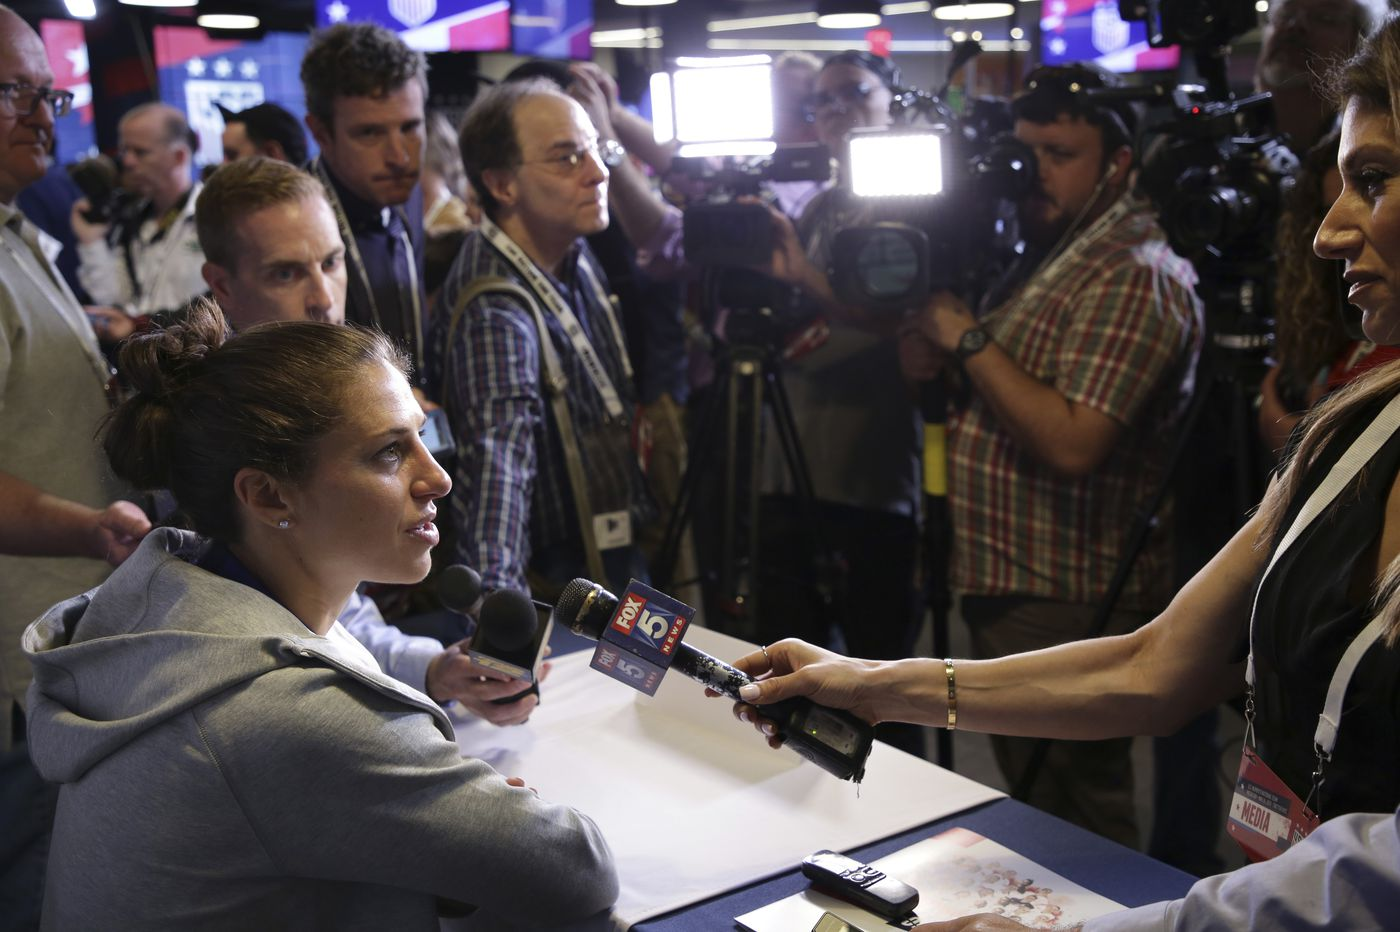 Carli Lloyd is as driven as ever as U.S. women's soccer team heads to France for World Cup